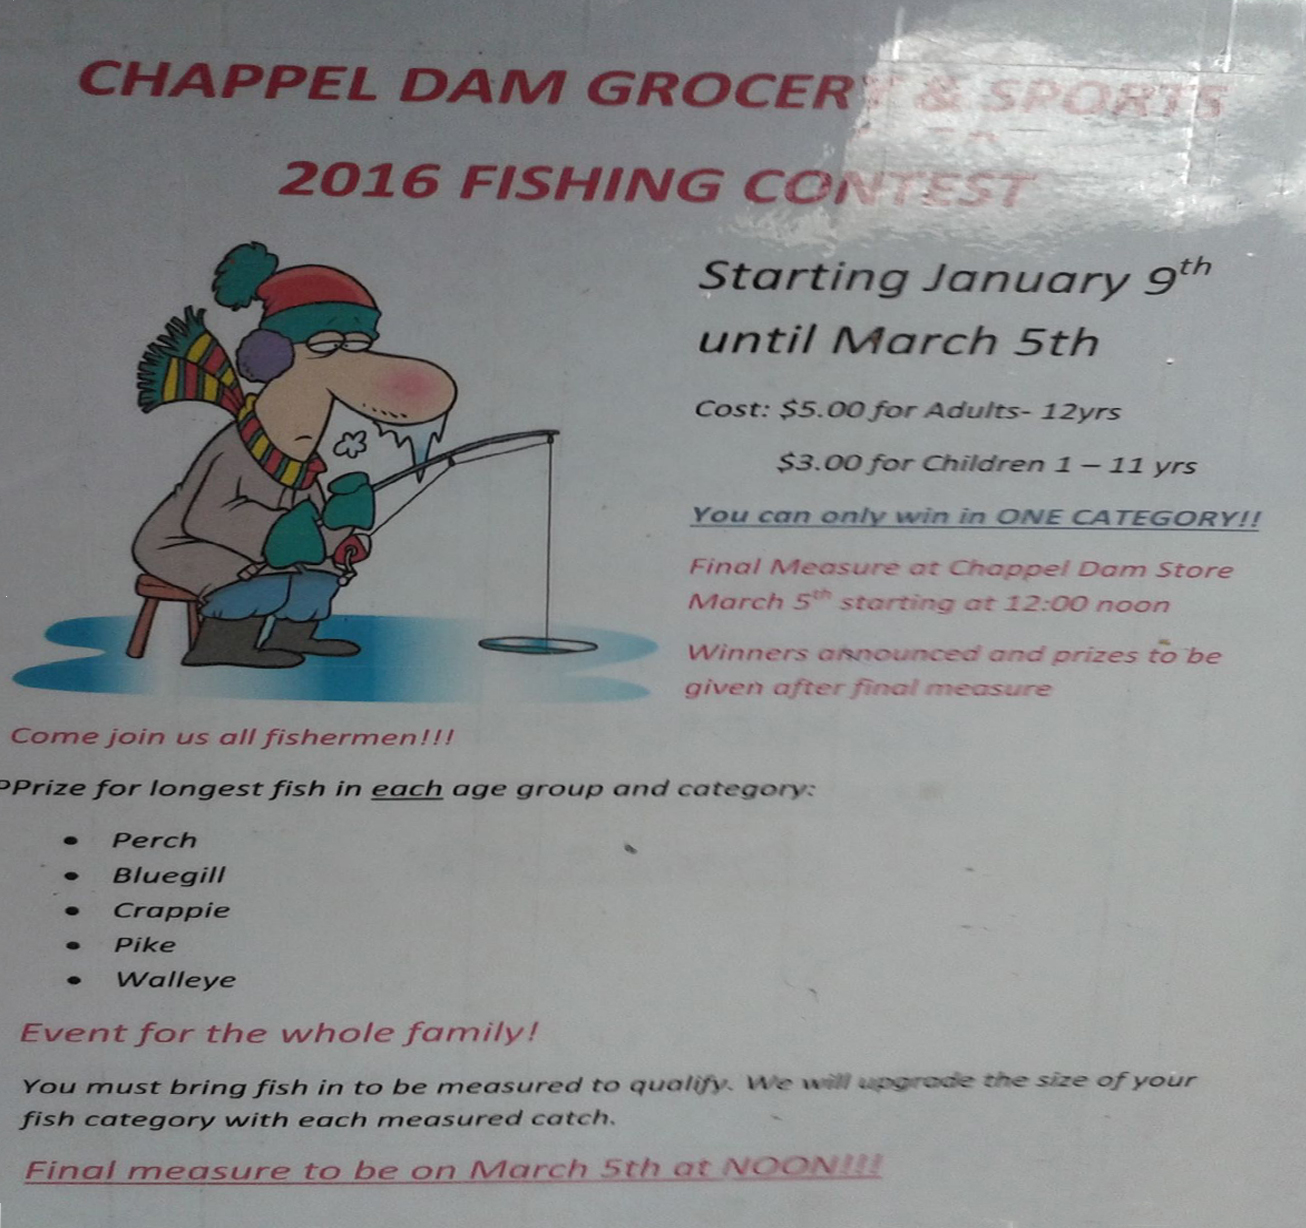 Chapped Dam Grocery ice fishing Contest